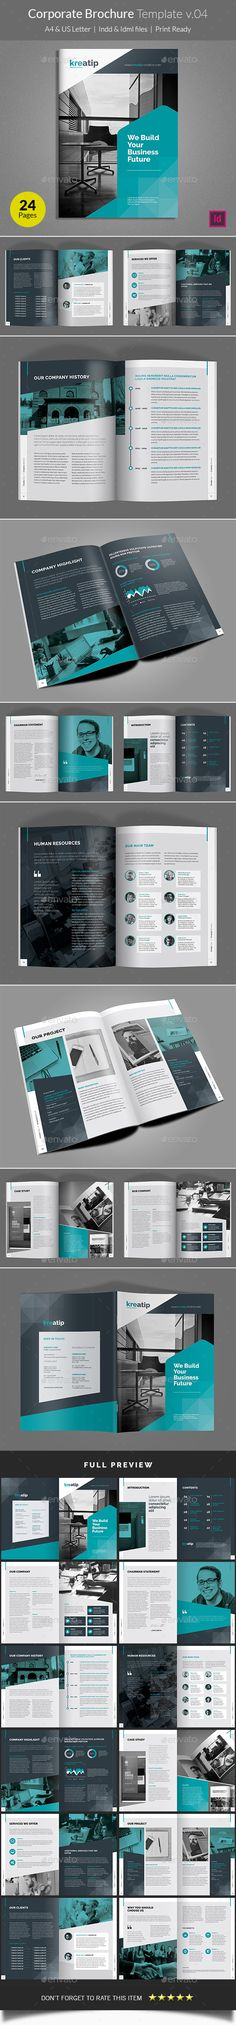 Corporate Brochure Template InDesign INDD. Download here: http://graphicriver.net/item/corporate-brochure-template-v04/16107844?ref=ksioks